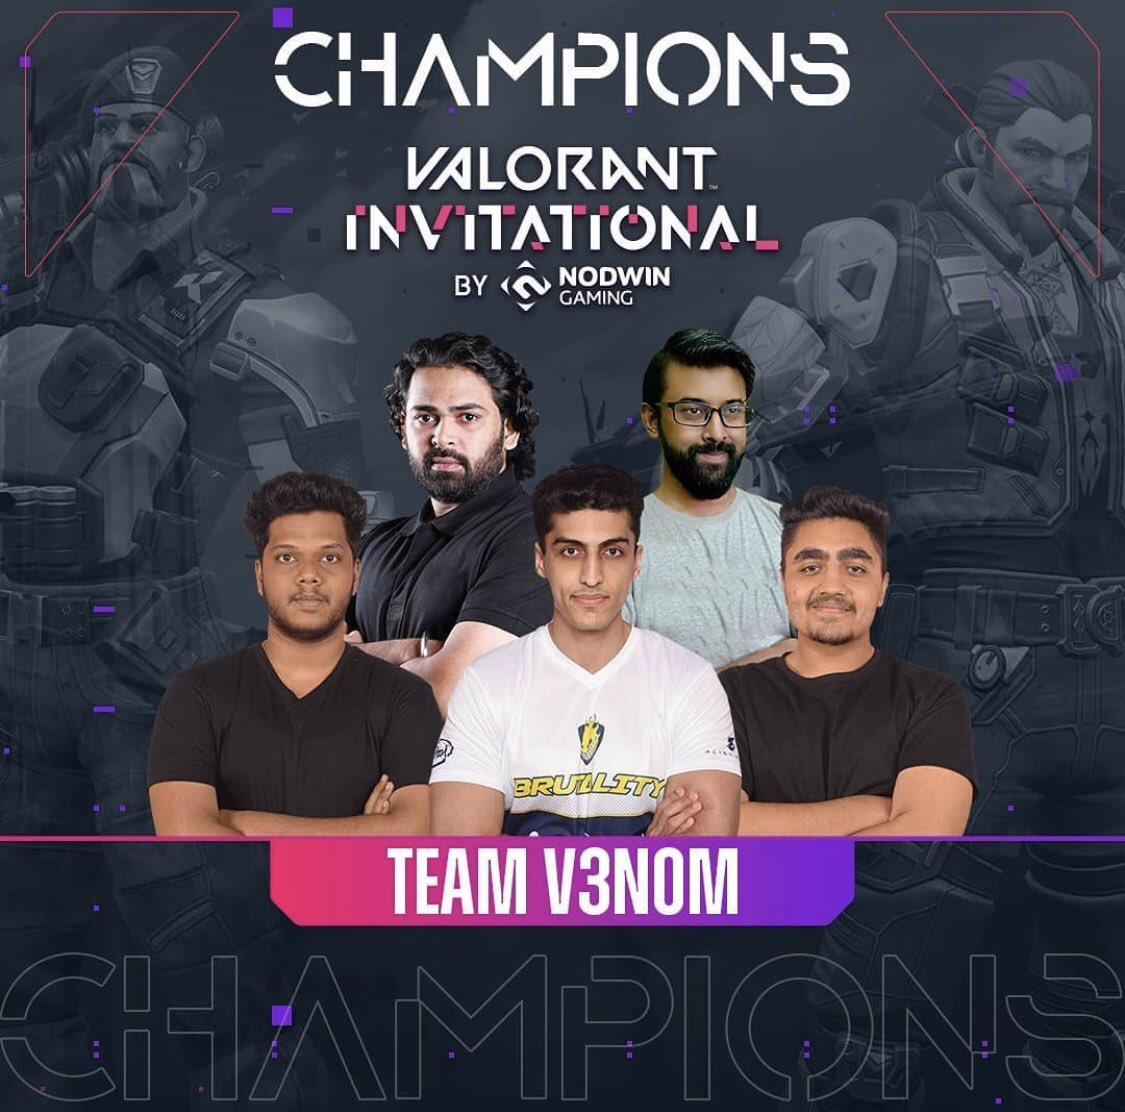 We are your champions of the Valorant Invitational 😇! Thank you for all the love and support ♥️. #V3nom #Valorant #Esports #Dell #Alienware #Corsair #RedBull #GivesYouWings #RedBullAthlete #GameOnIntel https://t.co/5JuAFIetX9